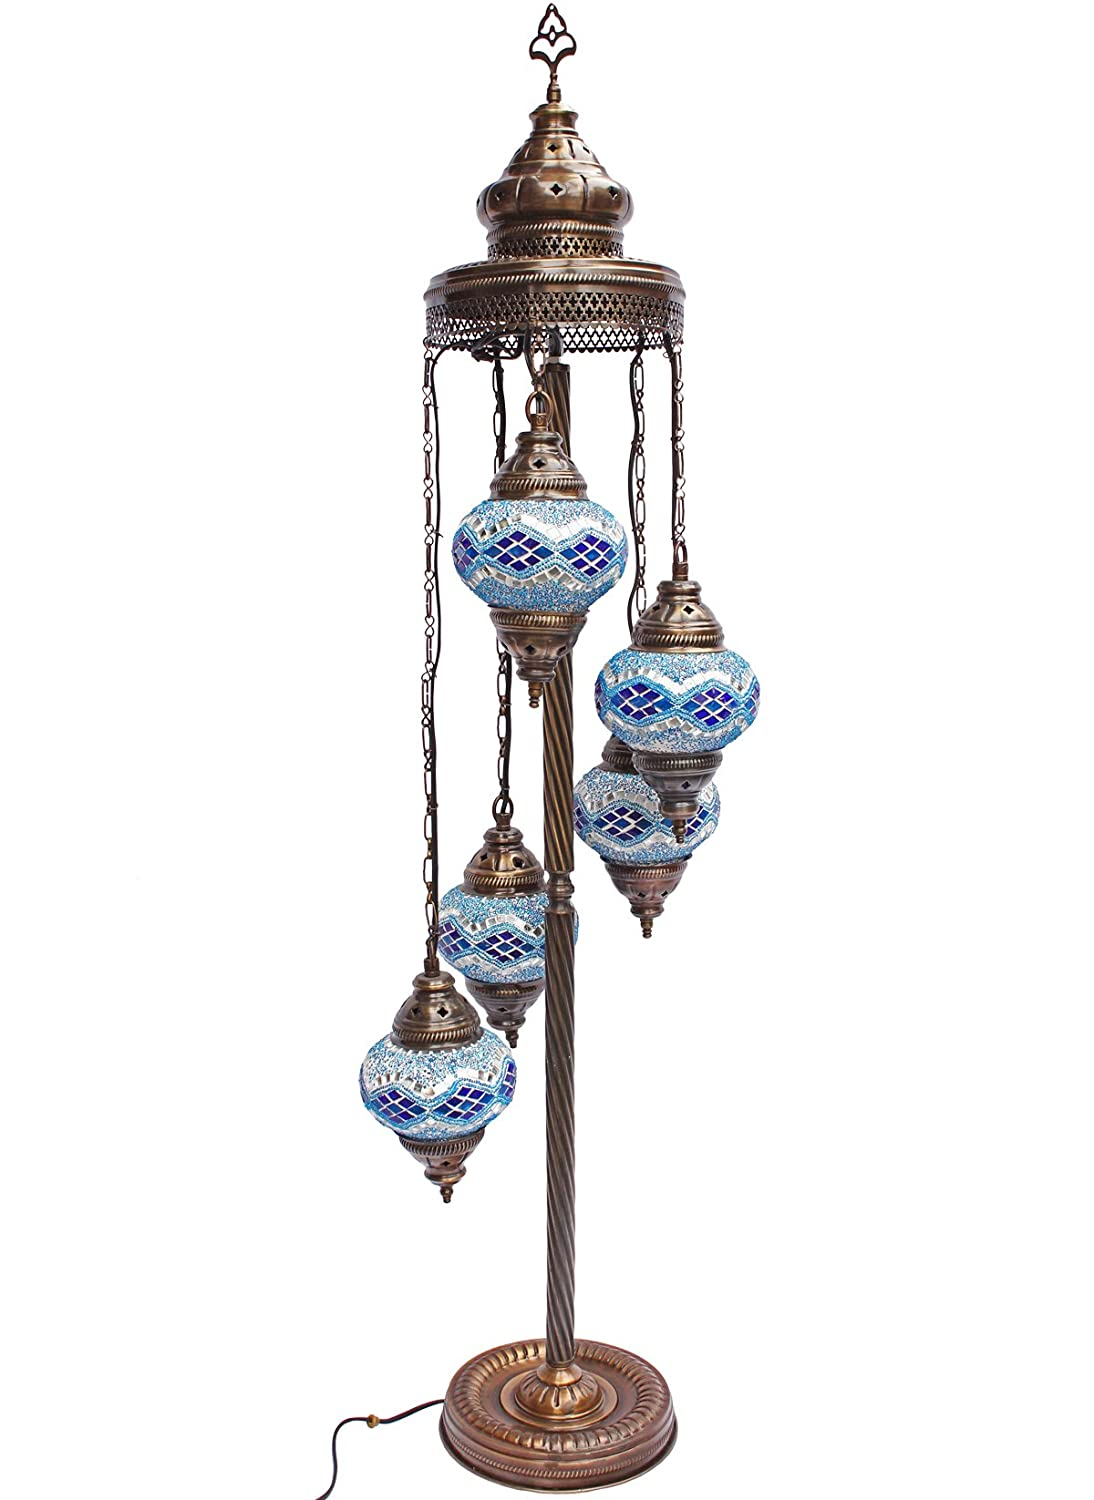 Mosaic Lamps, Turkish Lamp, Moroccan Lamps, Floor Lamps, Floor Lights, Unique Lamps, Living Room Decor, Bohemian Style, Home Furnishings, Restaurant Decoration